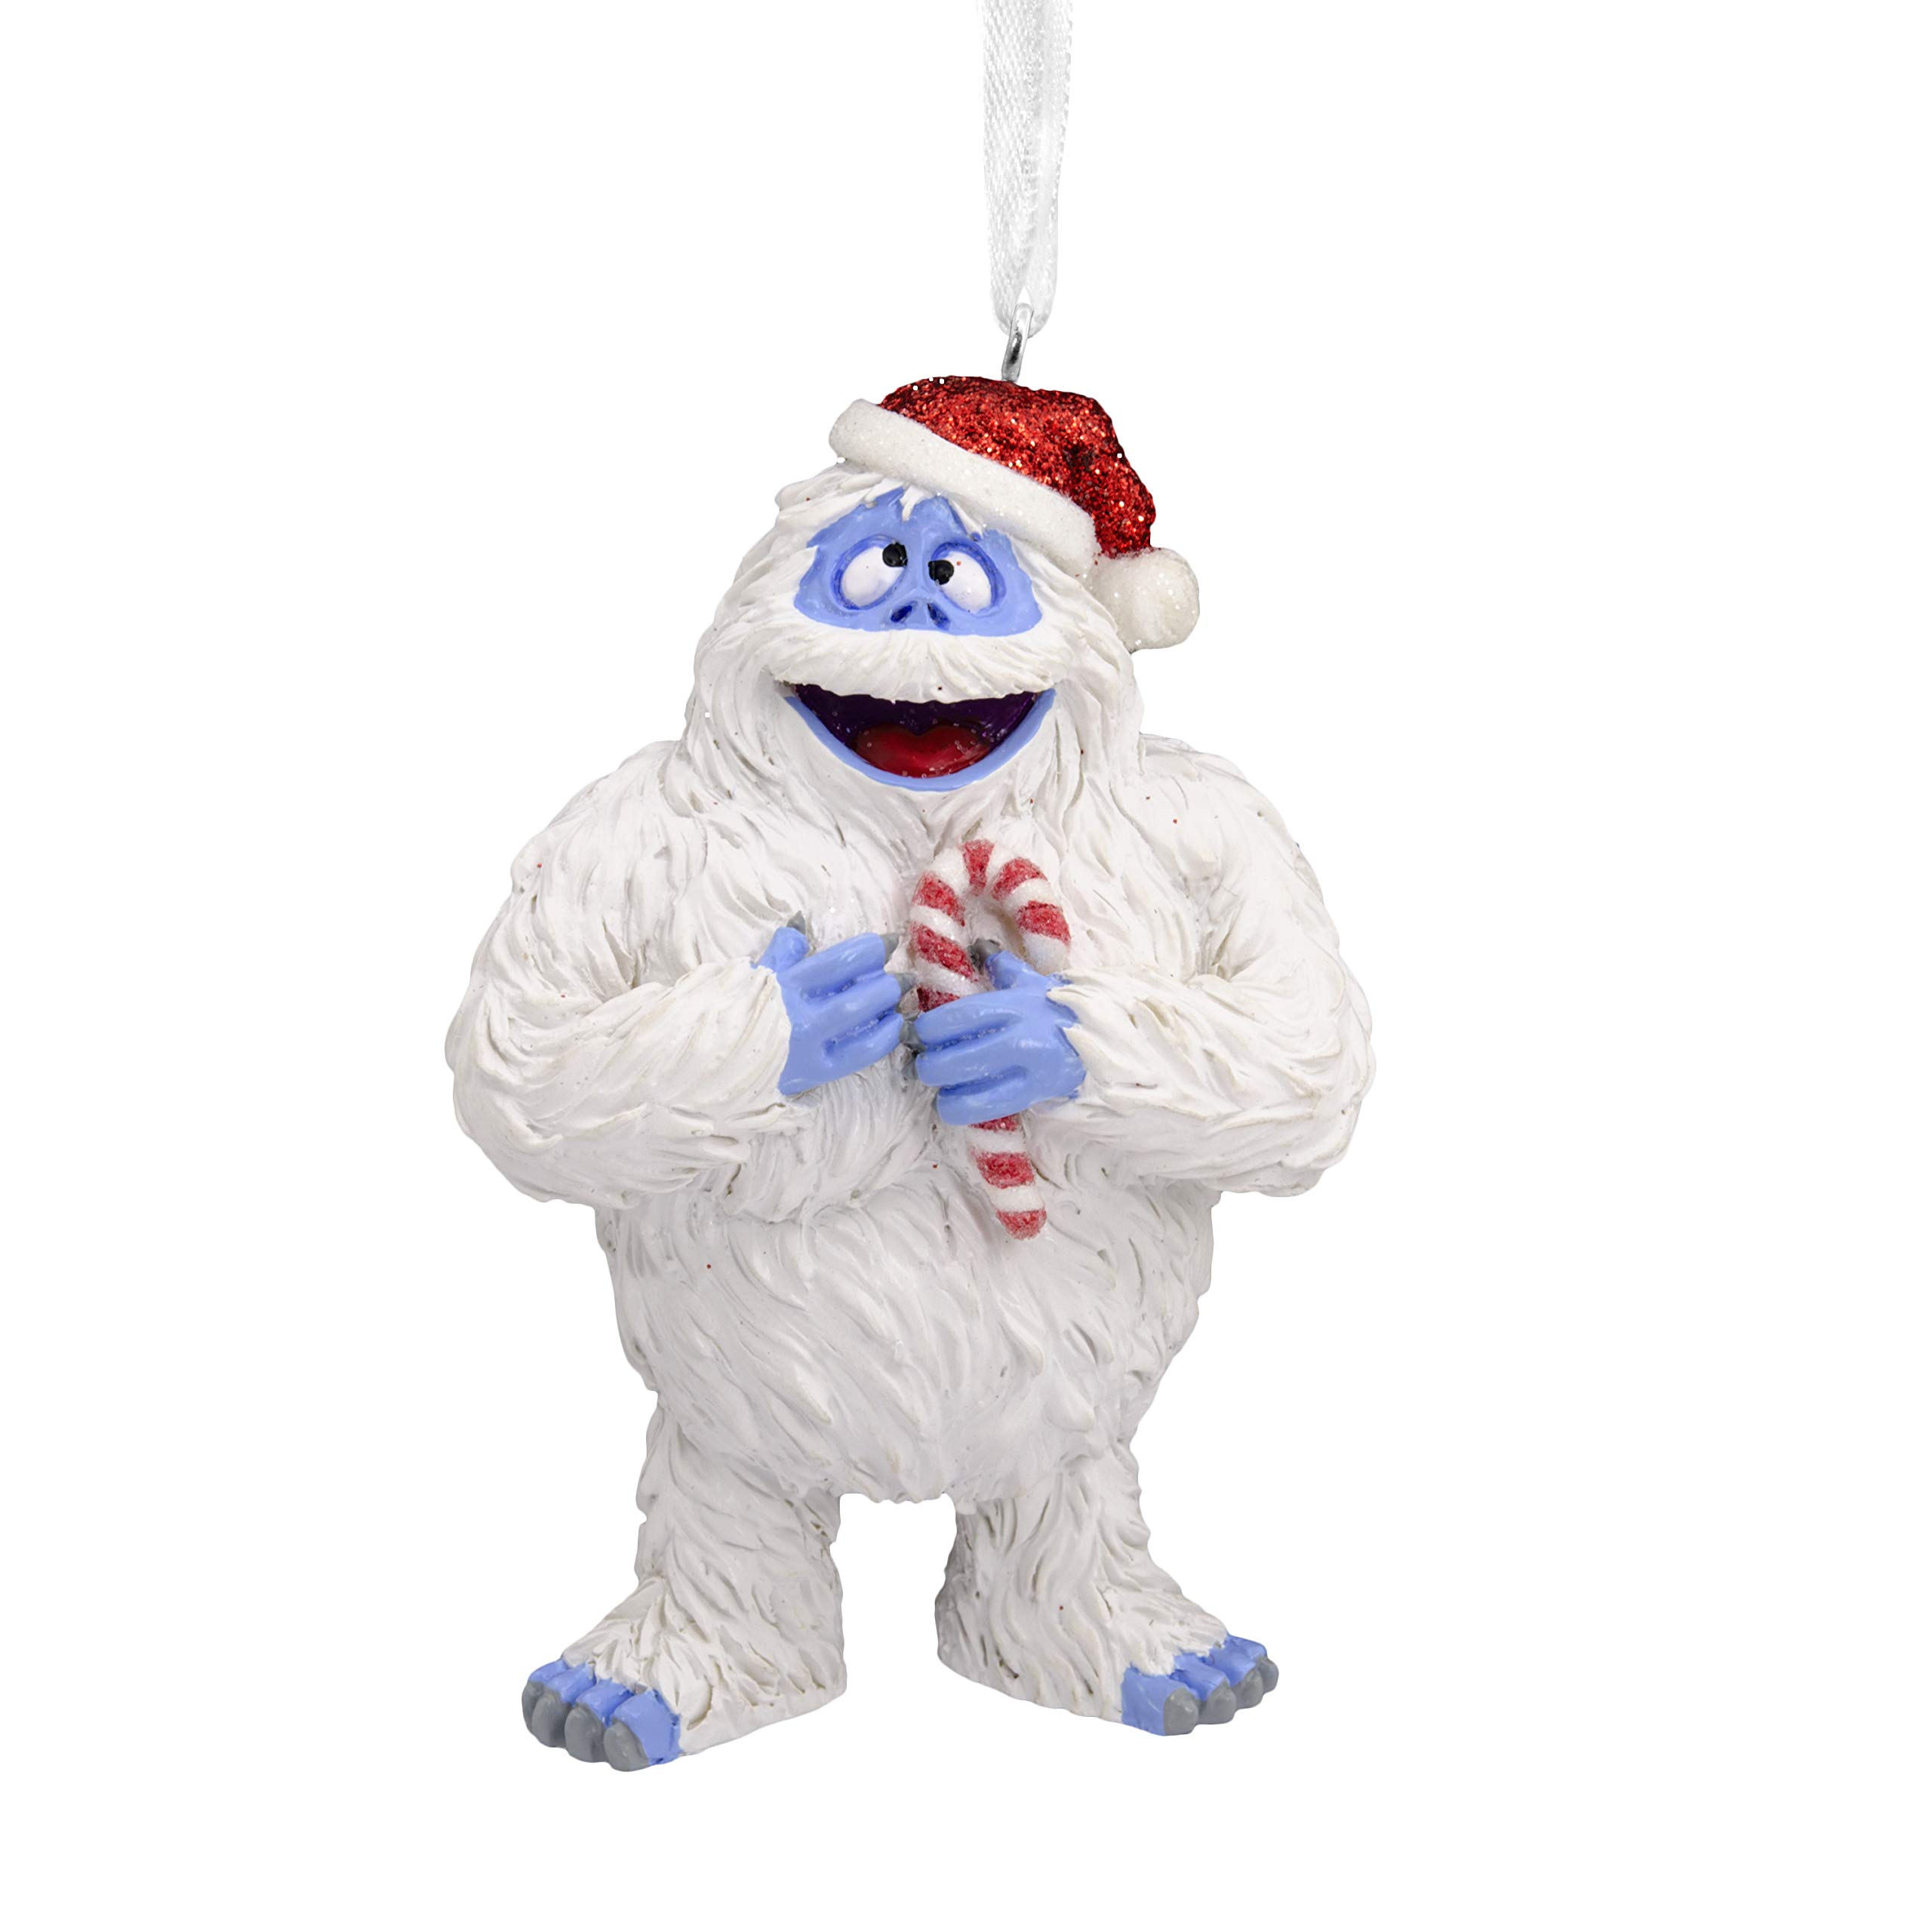 Image of Hallmark Rudolph the Red Nosed Reindeer Bumble Ornament